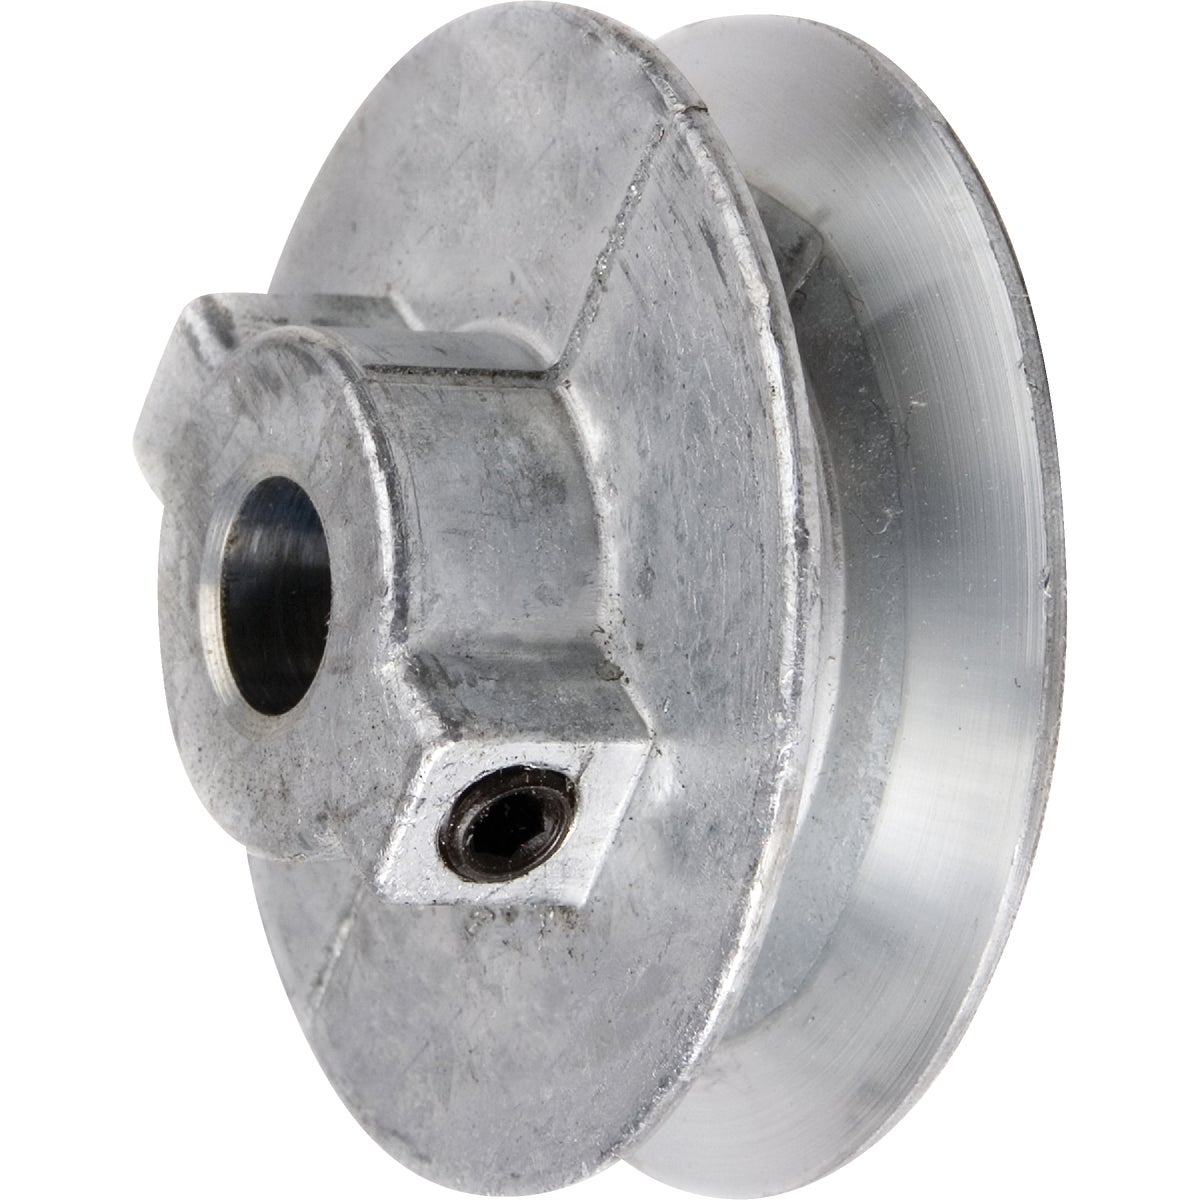 8X5/8 PULLEY - 800A6 by Chicago Die Casting